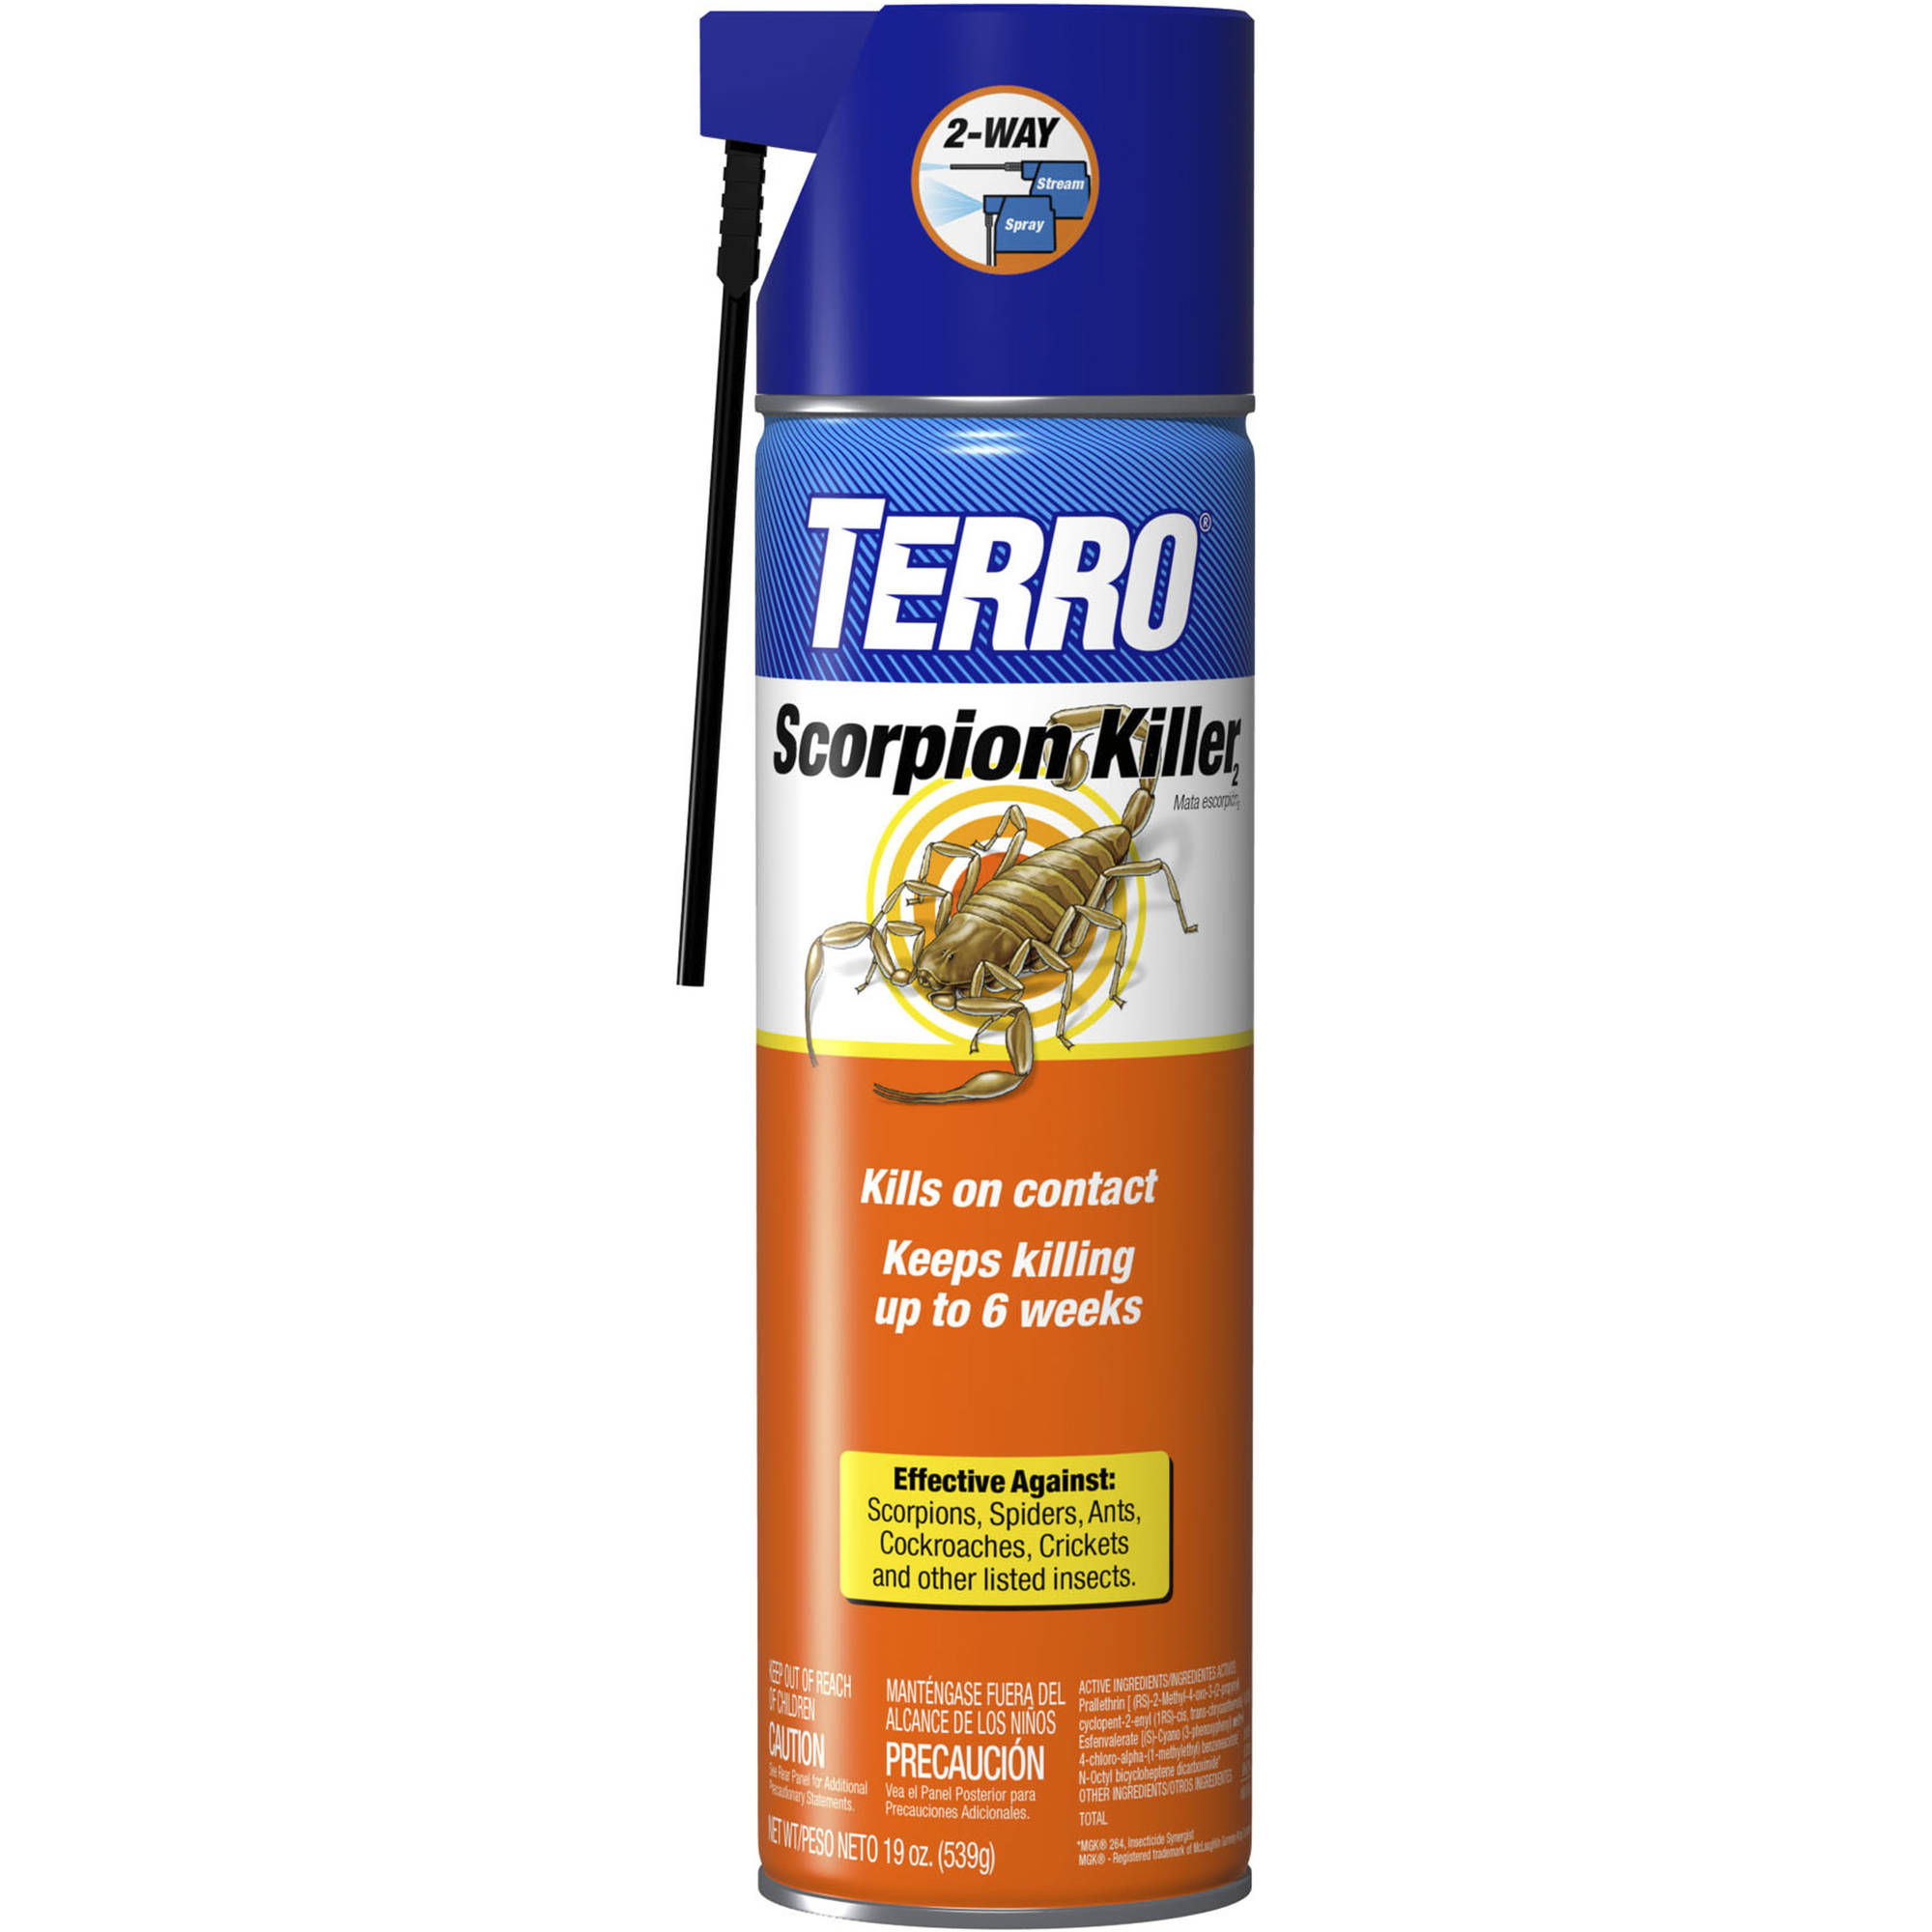 TERRO Scorpion Killer Spray